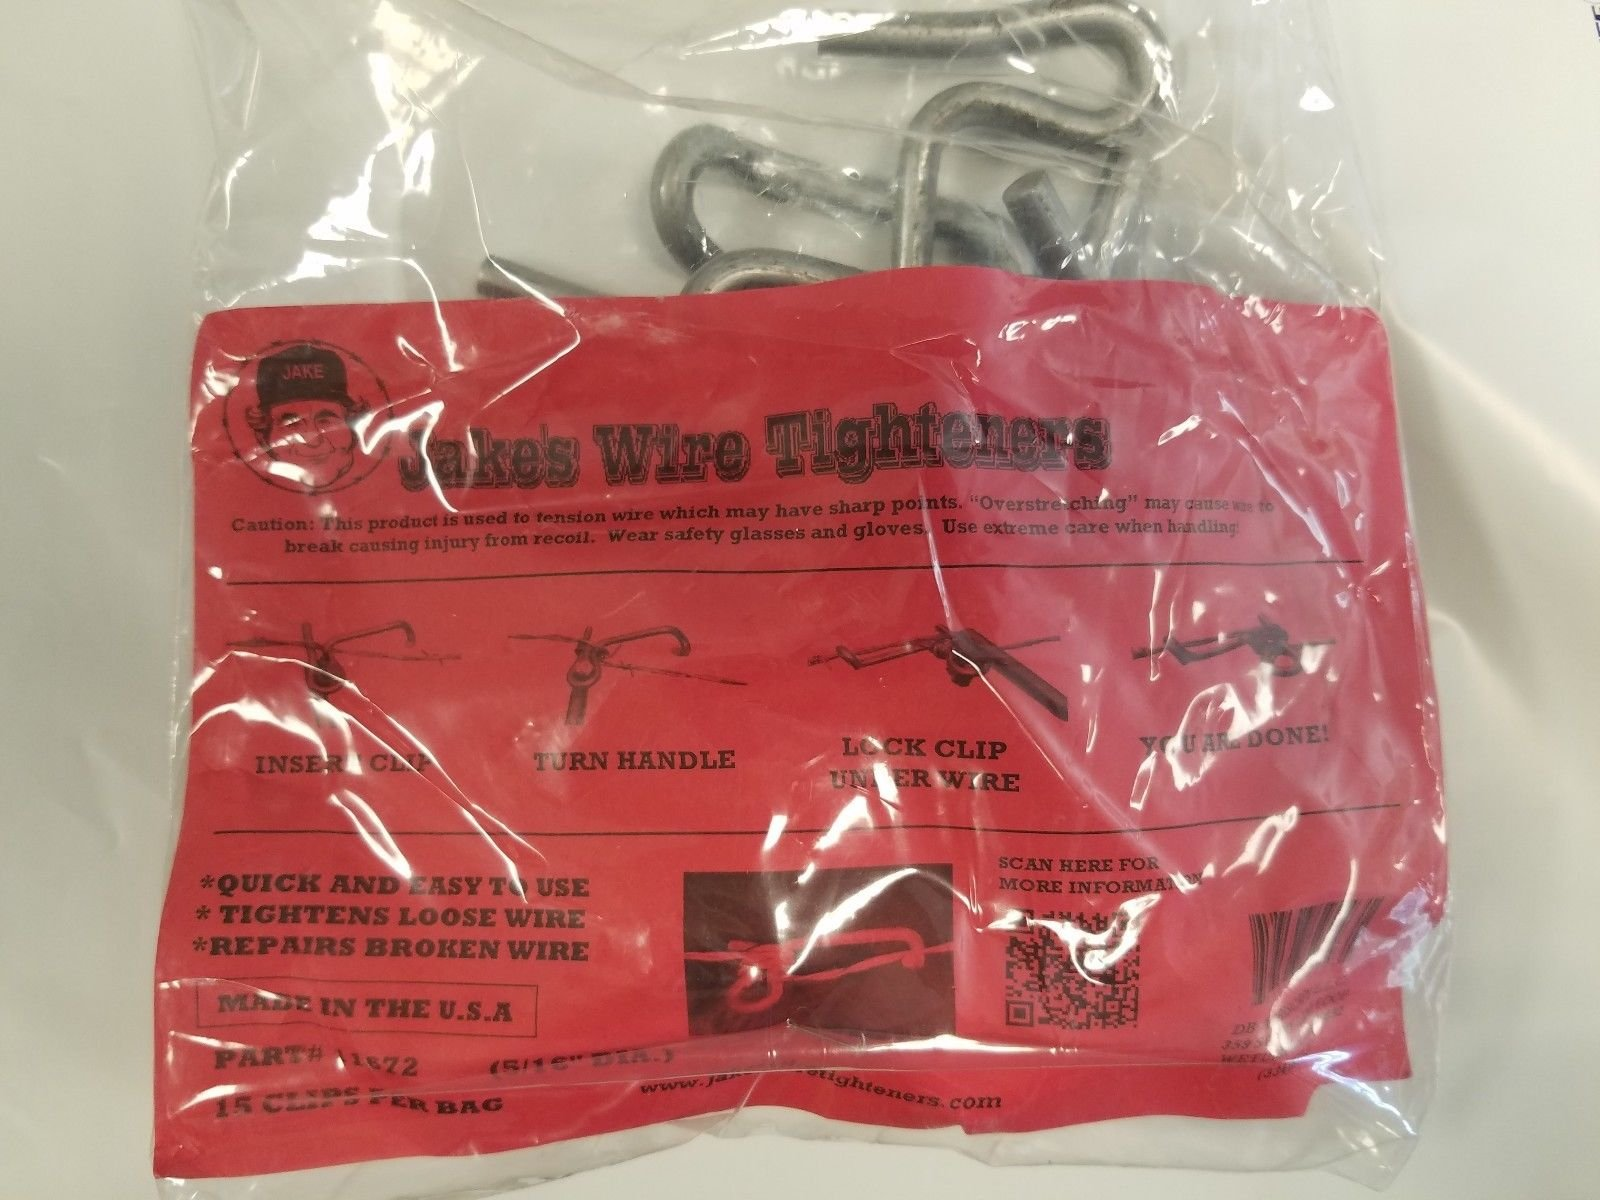 Jakes Wire Tighteners Heavy Duty 5/16'' 15 Count Bag and Handle Tool